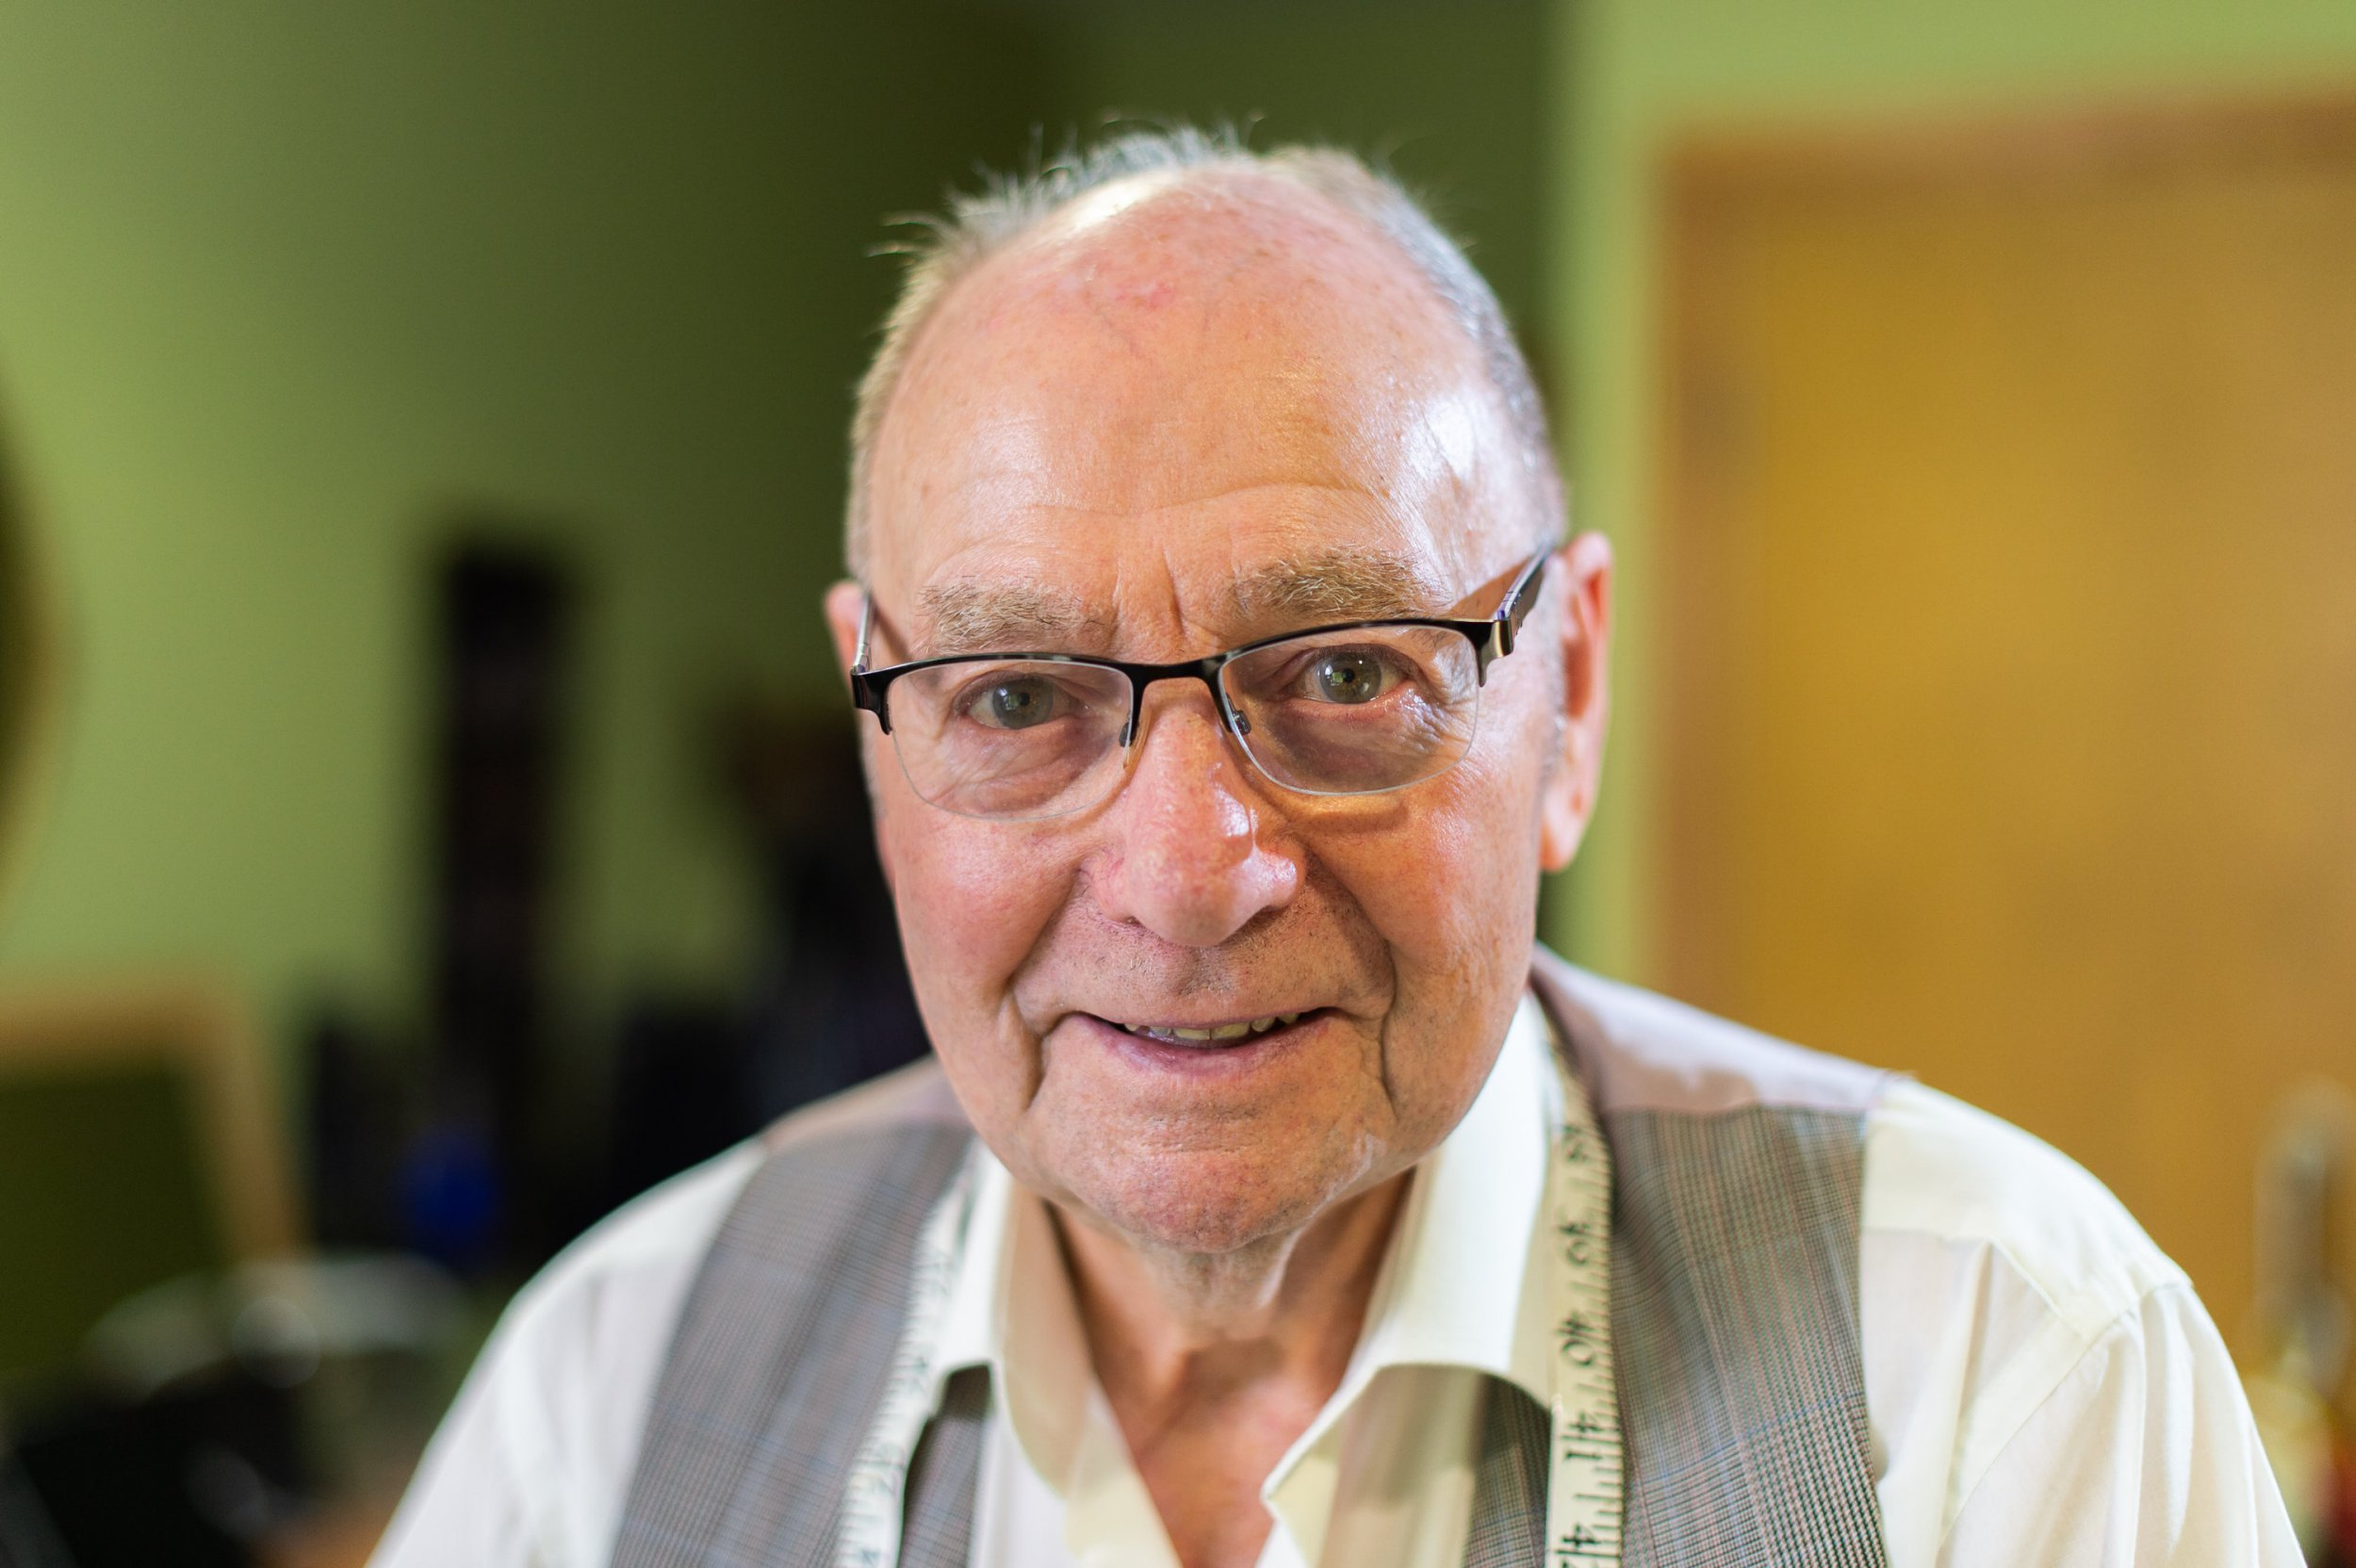 Elwyn Hughes is still tailoring at the age of 95